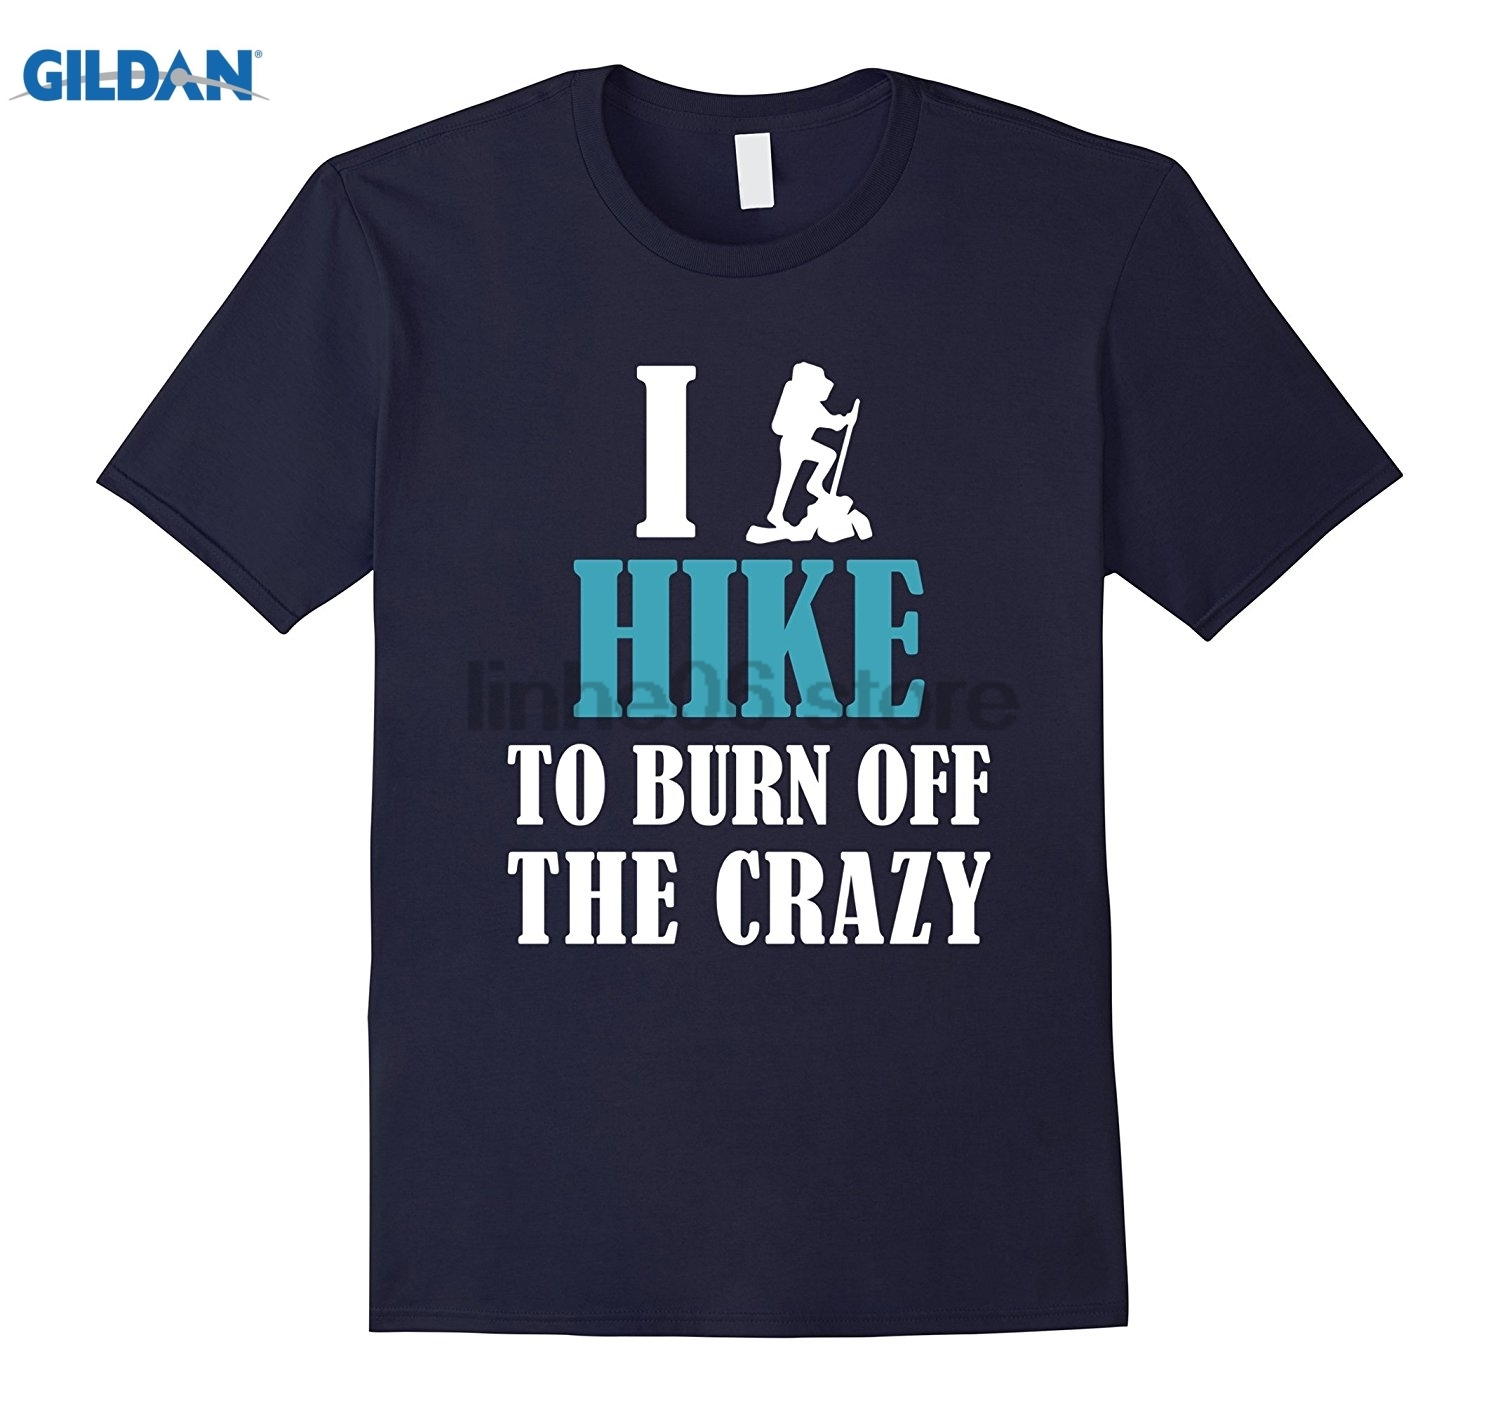 GILDAN shirt - I to burn off the crazy GILDAN 100% Pure cotton O signage flower item til ...